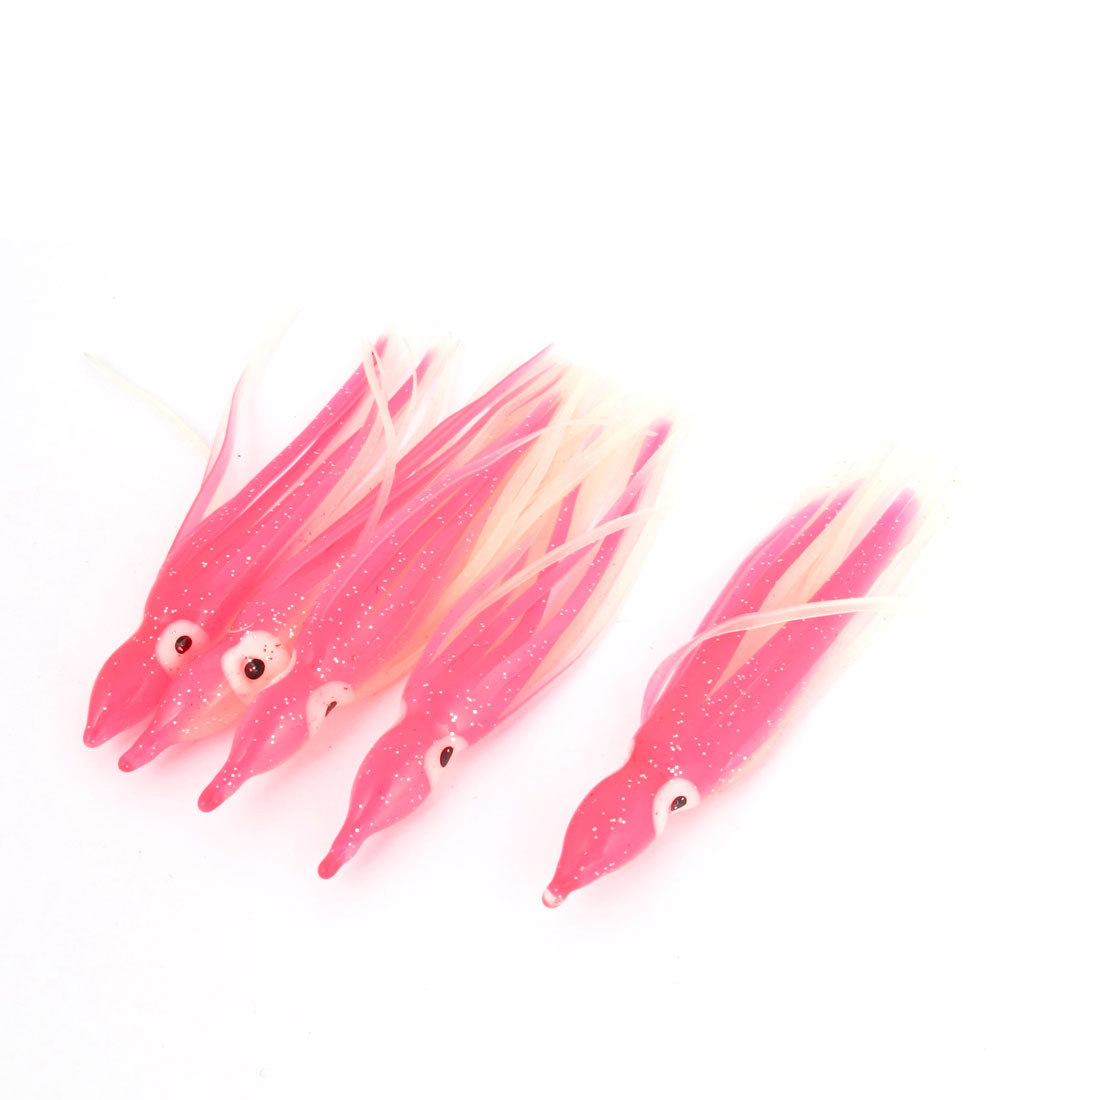 5 Pcs Simulation Octopus Design Pink White Silicone Fishing Baits Lure